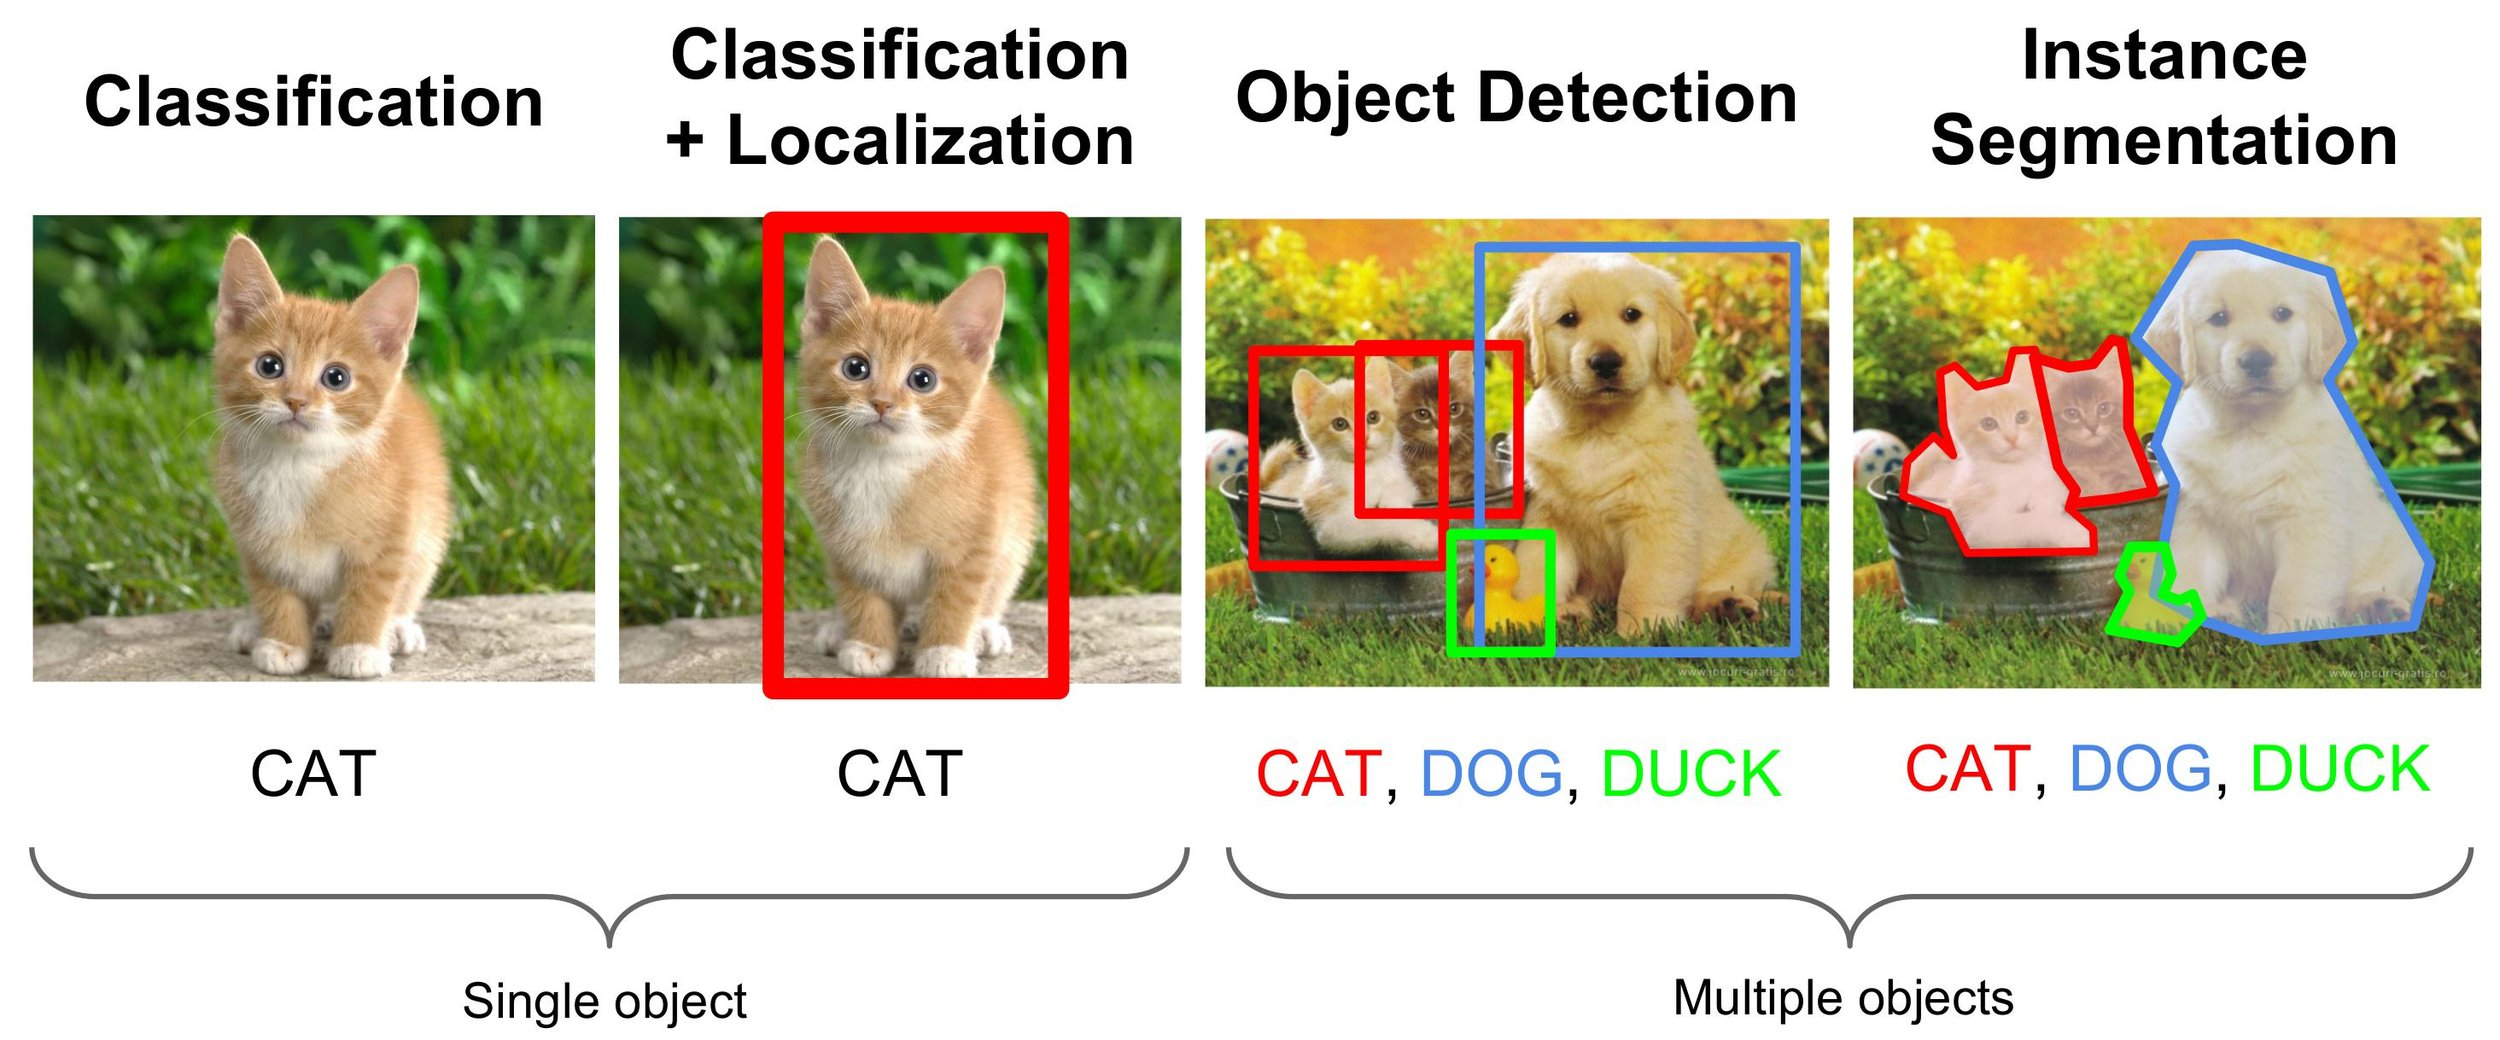 image-classification.jpg